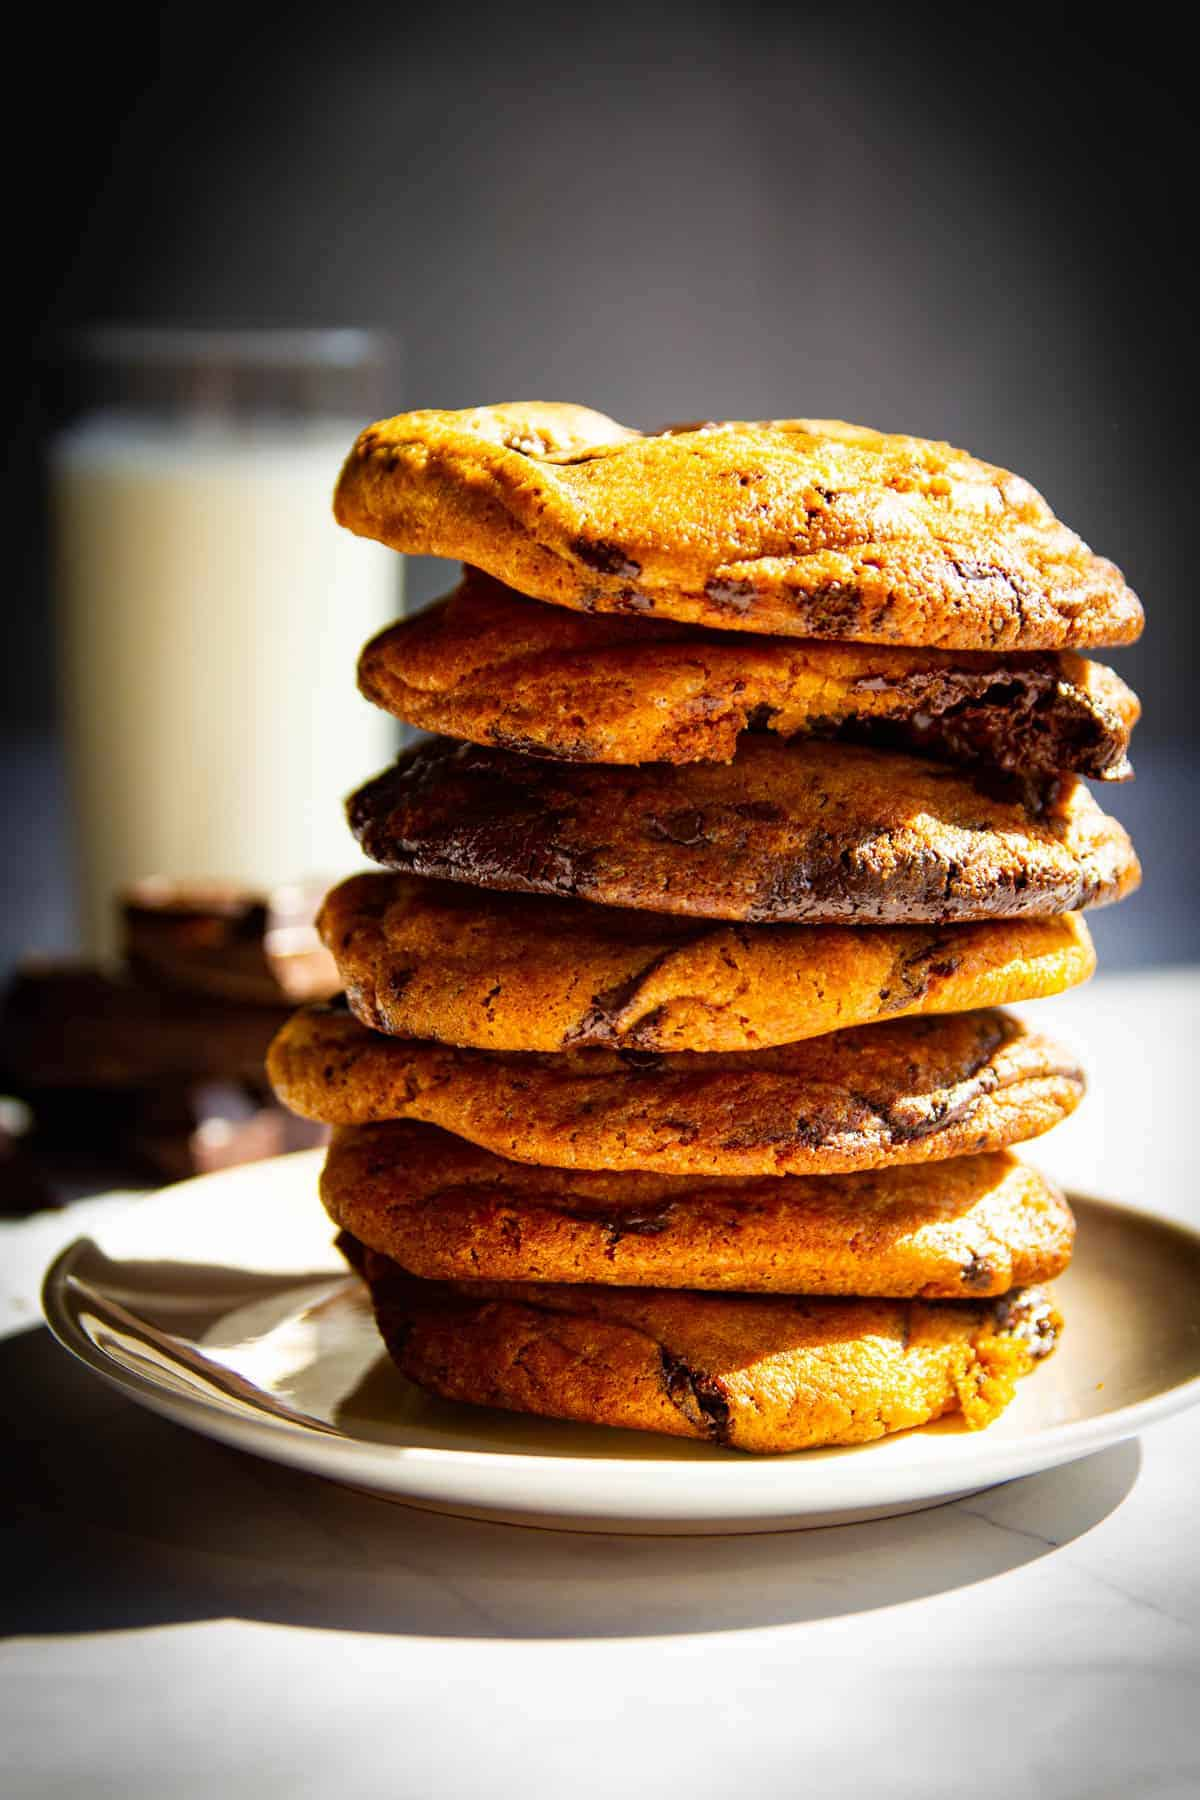 A stack of my ultimate chocolate chip cookies with a glass of milk behind it.